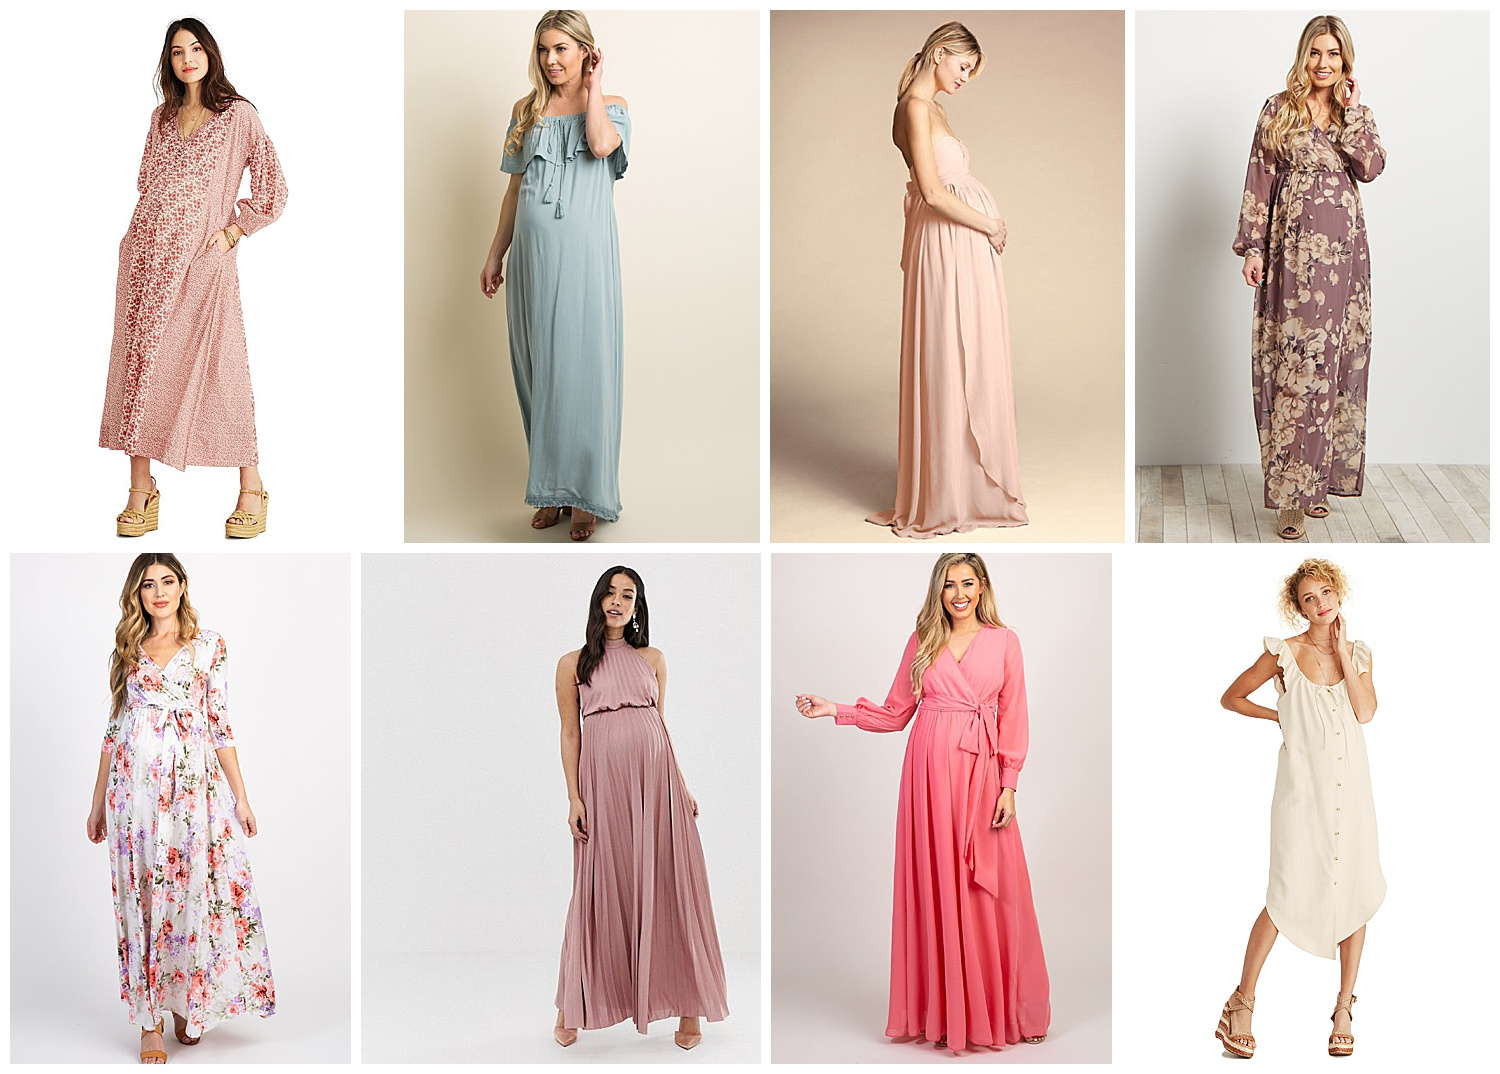 Beginning from top left: (1)  The Gemma Dress  (2)  Trim Tassel Off Shoulder Maternity Maxi  (3)  Jenny Yoo Cerise Dress  (4)  Lavender Floral Chiffon Wrap Maternity Maxi  (5)  Floral Maternity Wrap Maxi  (6)  ASOS Design Maternity High Neck Pleated Maxi  (7)  Coral Chiffon Long Sleeve Pleated Maternity Maxi  (8)  The Jenna Dress